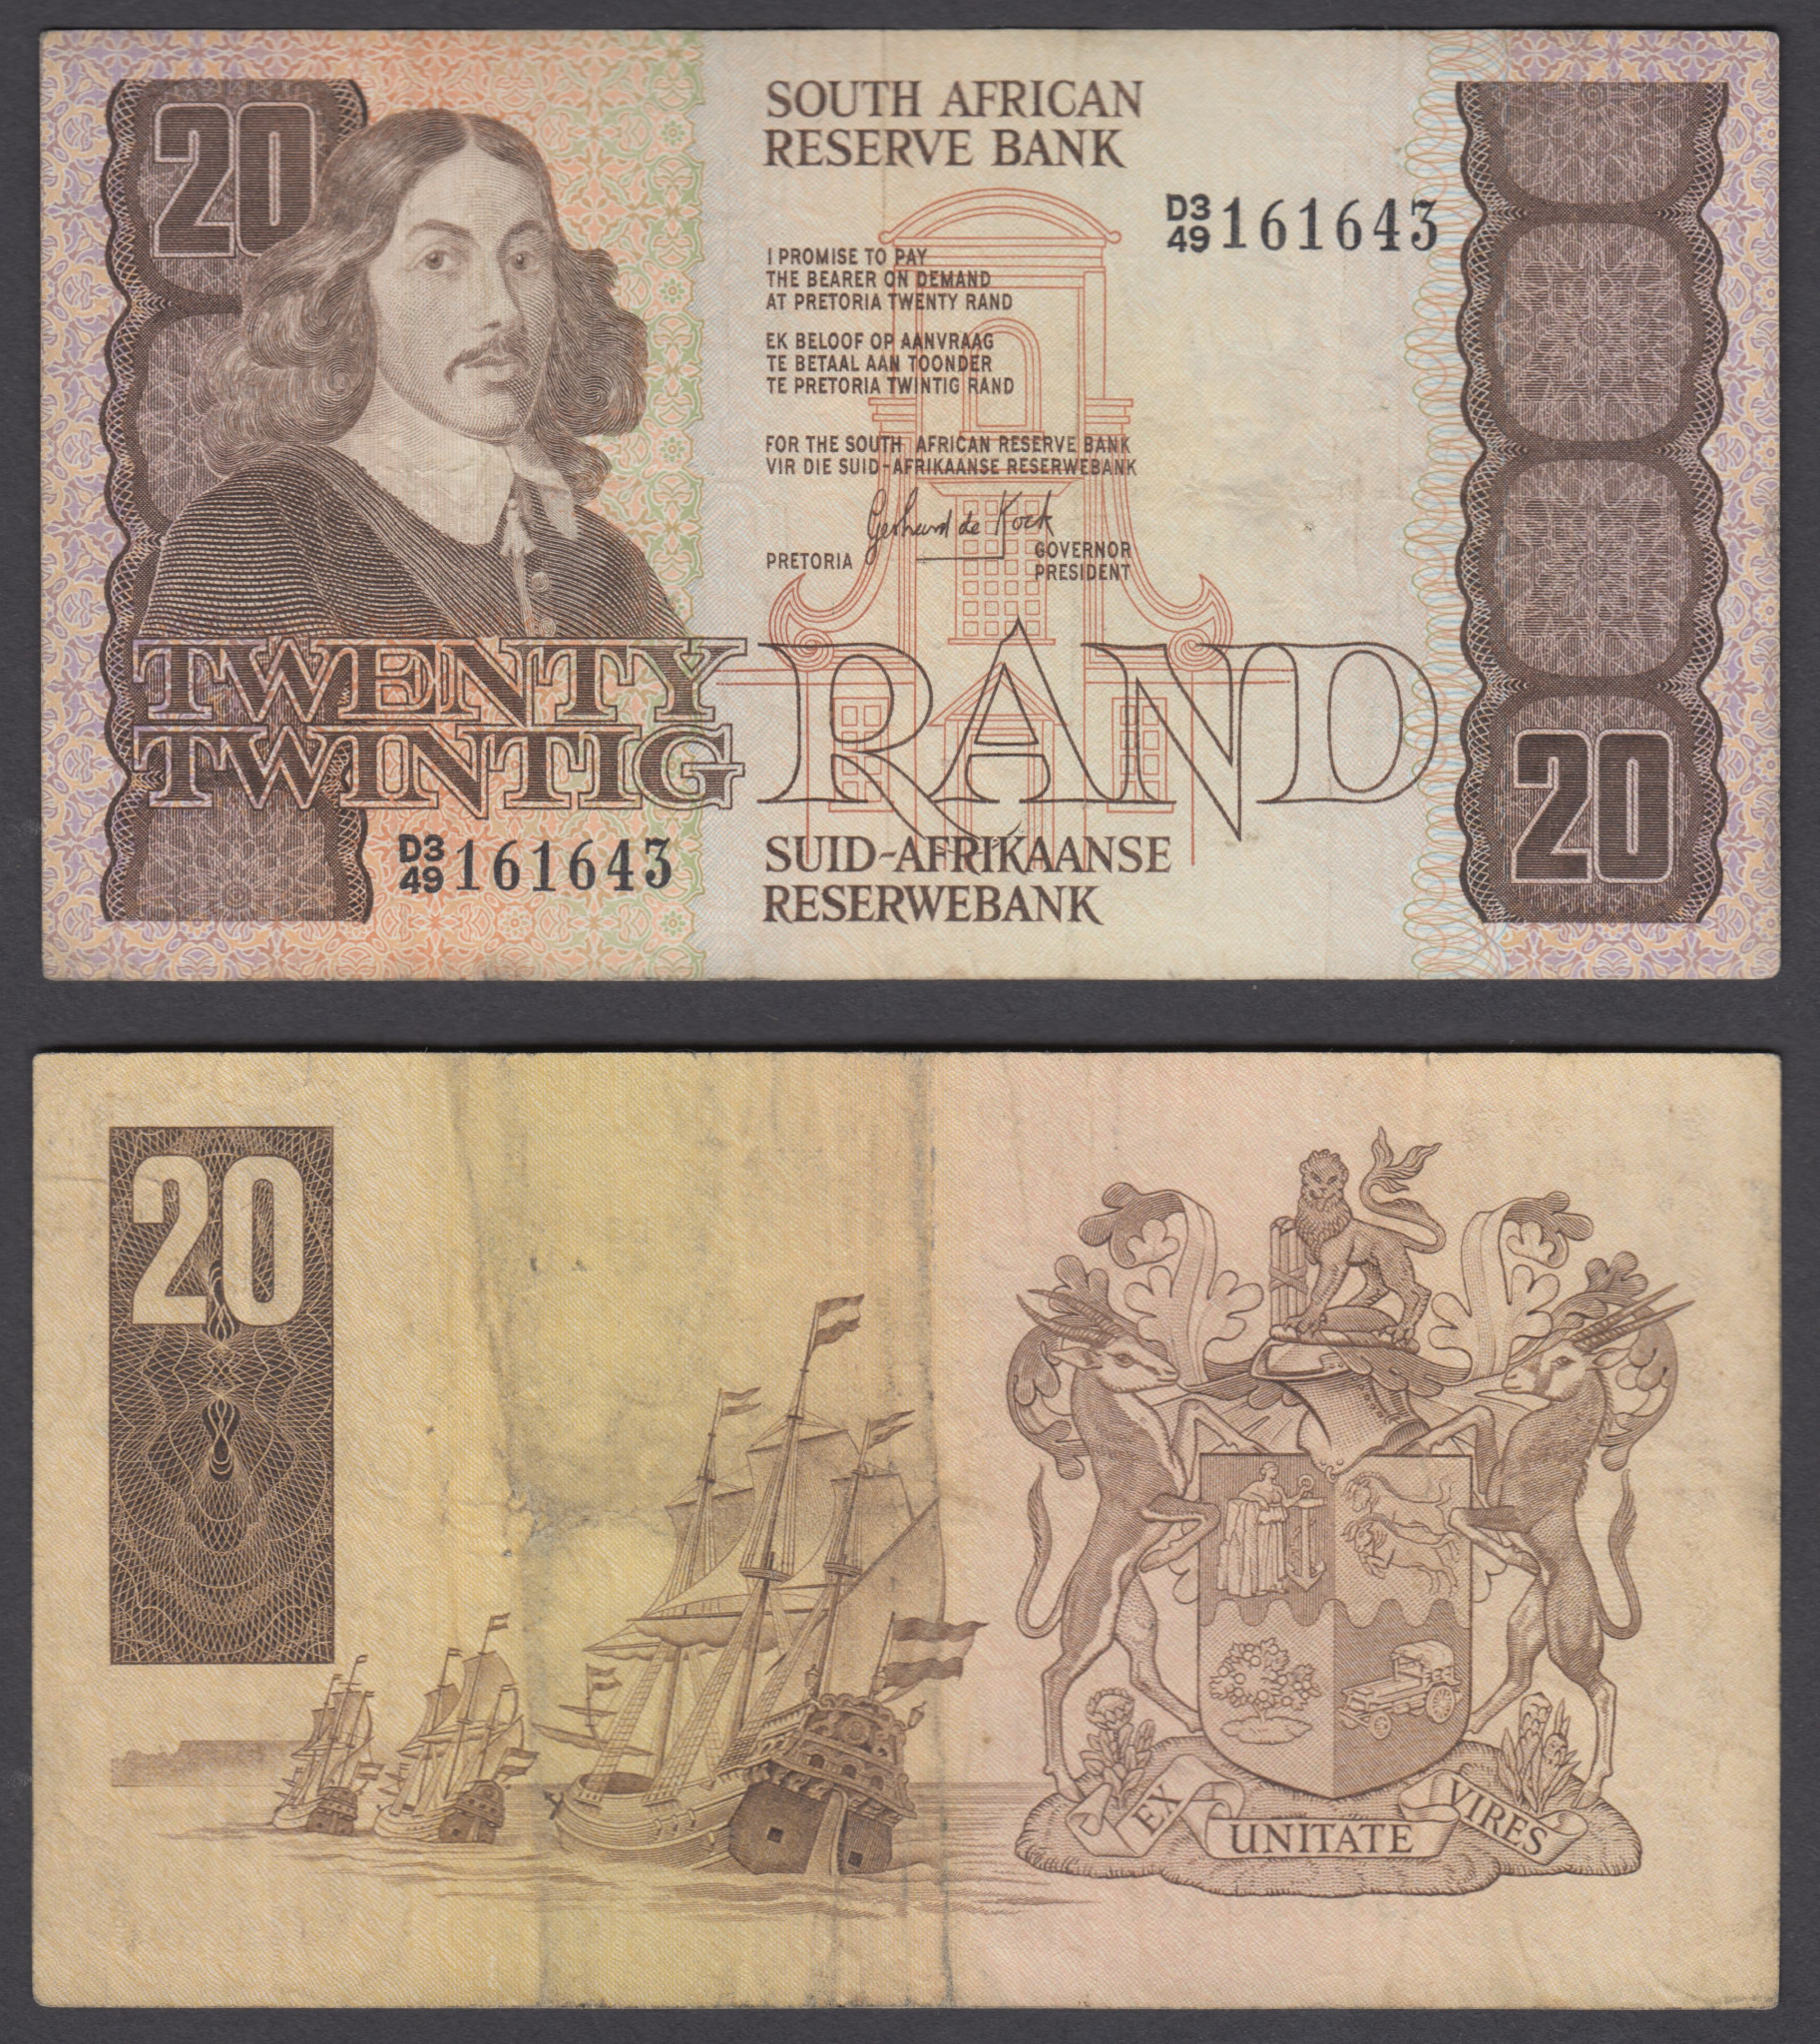 Details about South Africa 20 Rand ND 1982-85 (F-VF) Condition Banknote  P-121c